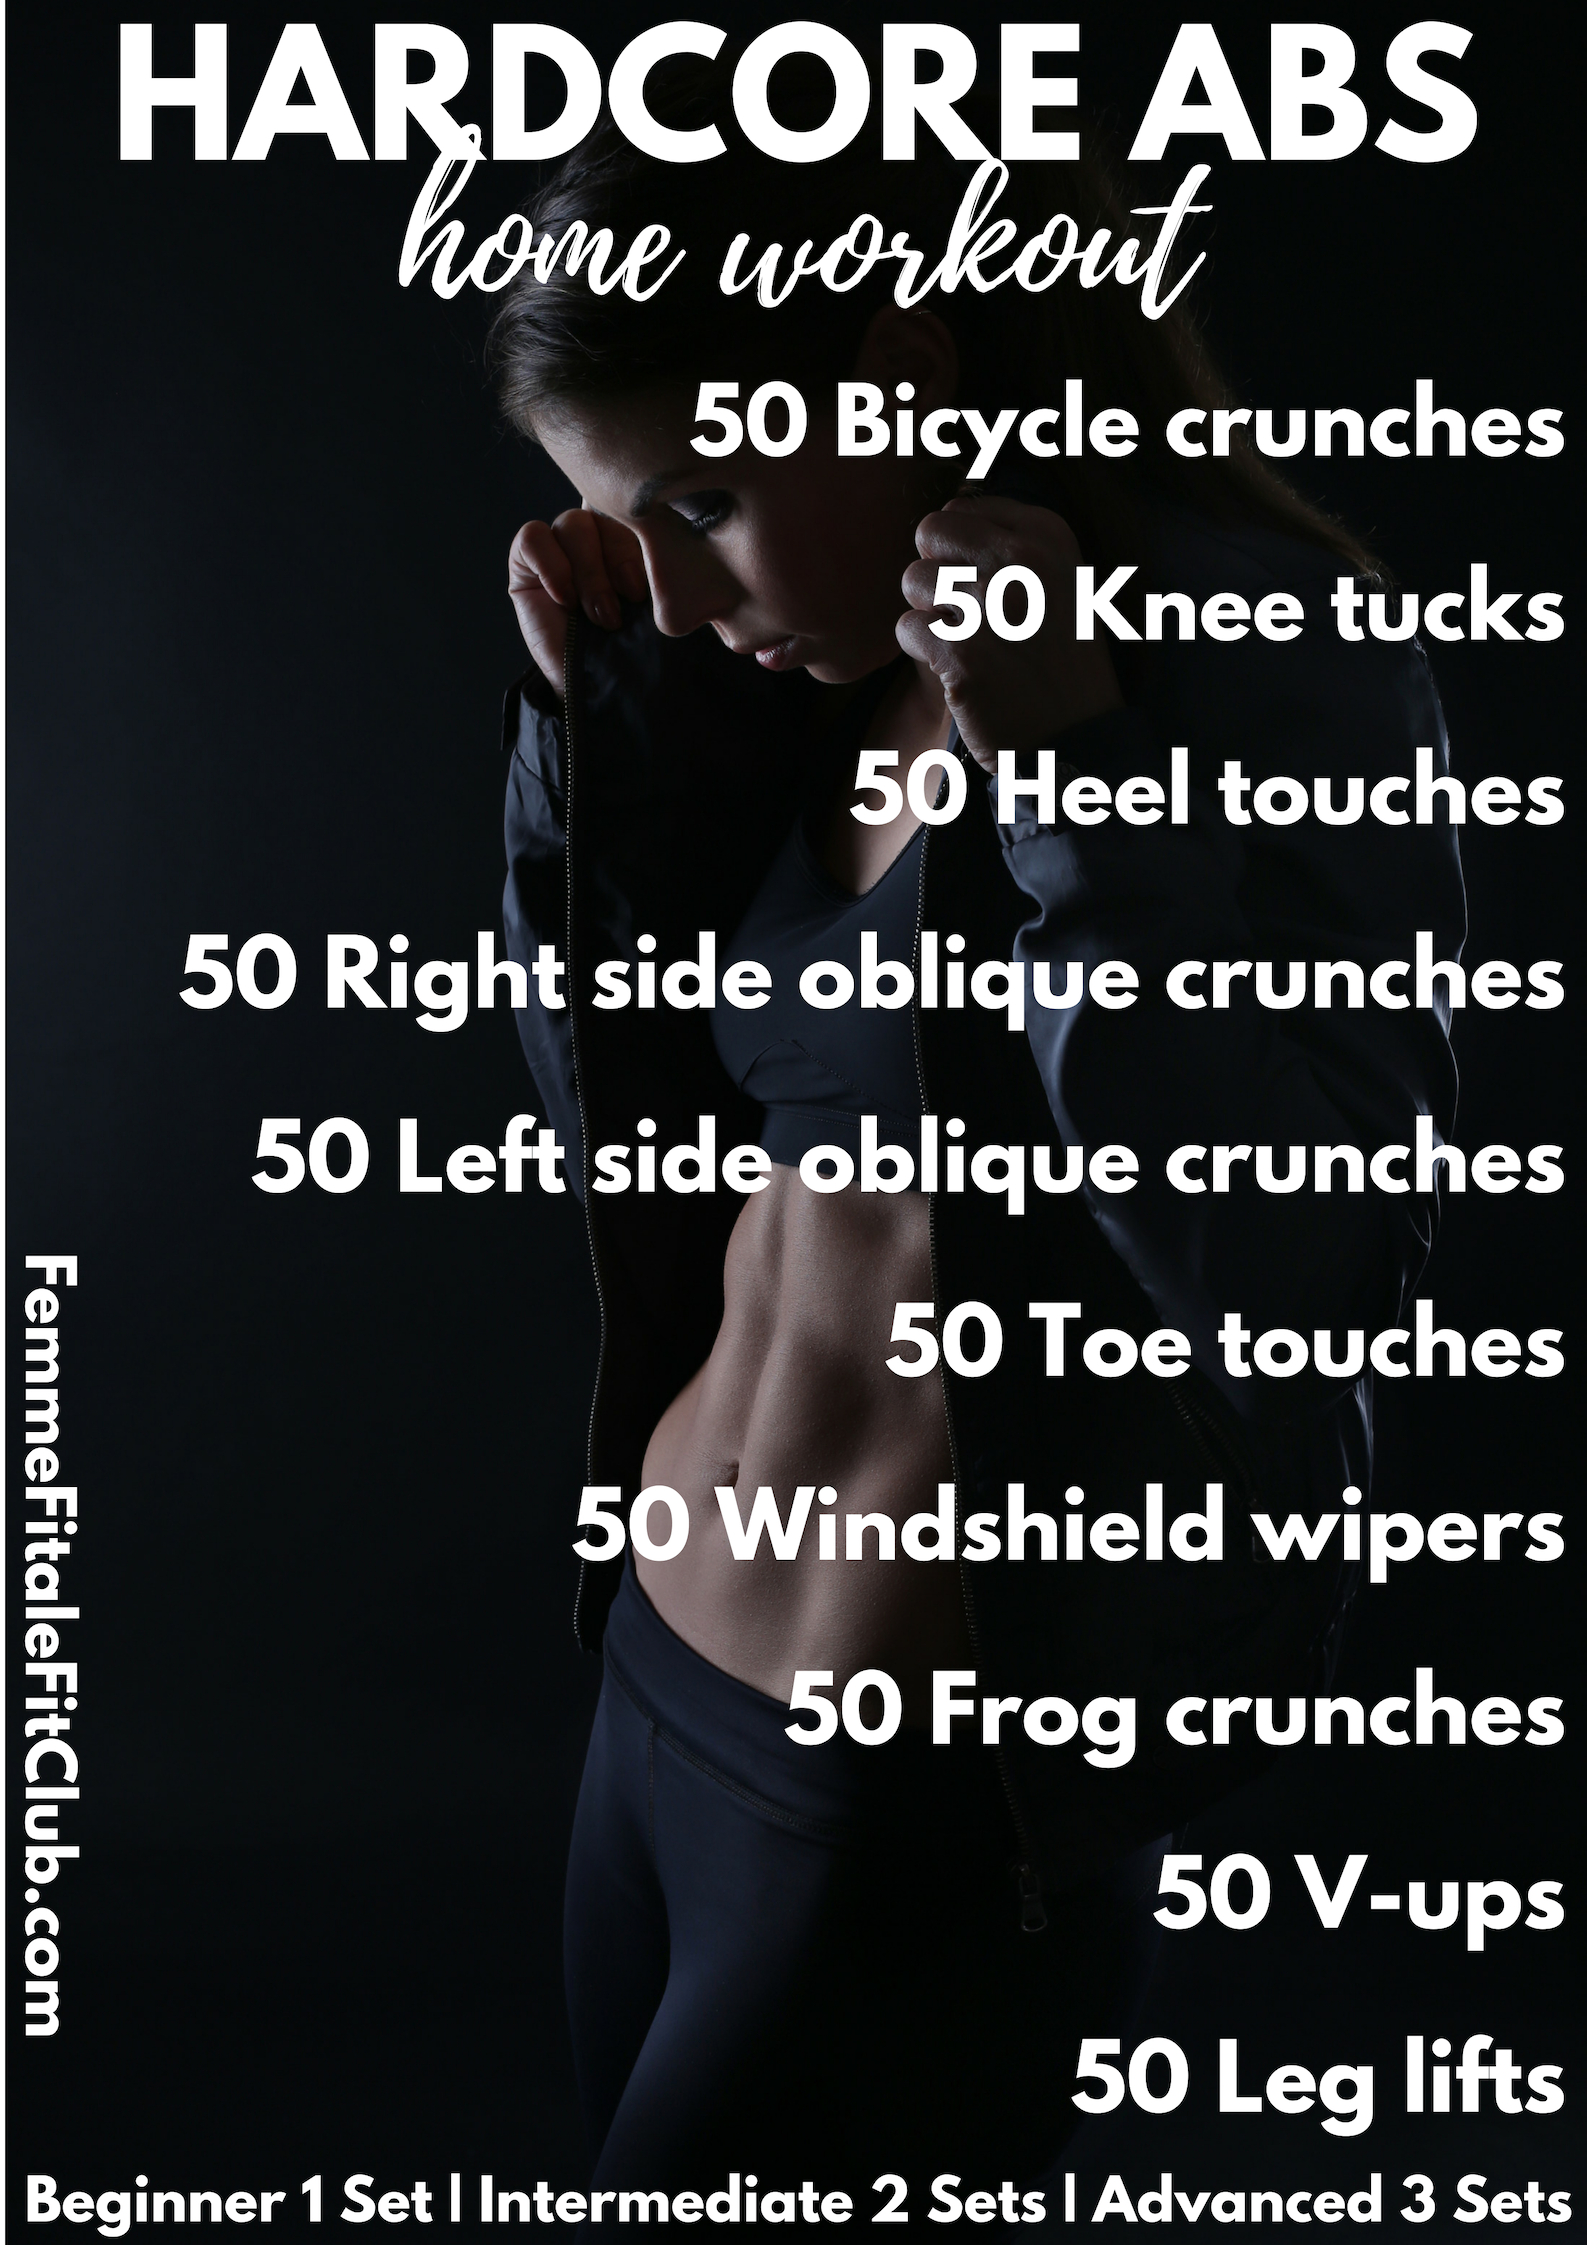 Hardcore Abs Home Workout #athomeworkout #workouts #coreworkout #absworkout #flatabs #flatbelly #flattummy #abs #hardcore #core #fitness #getfit #exercise #slimwaist (1)